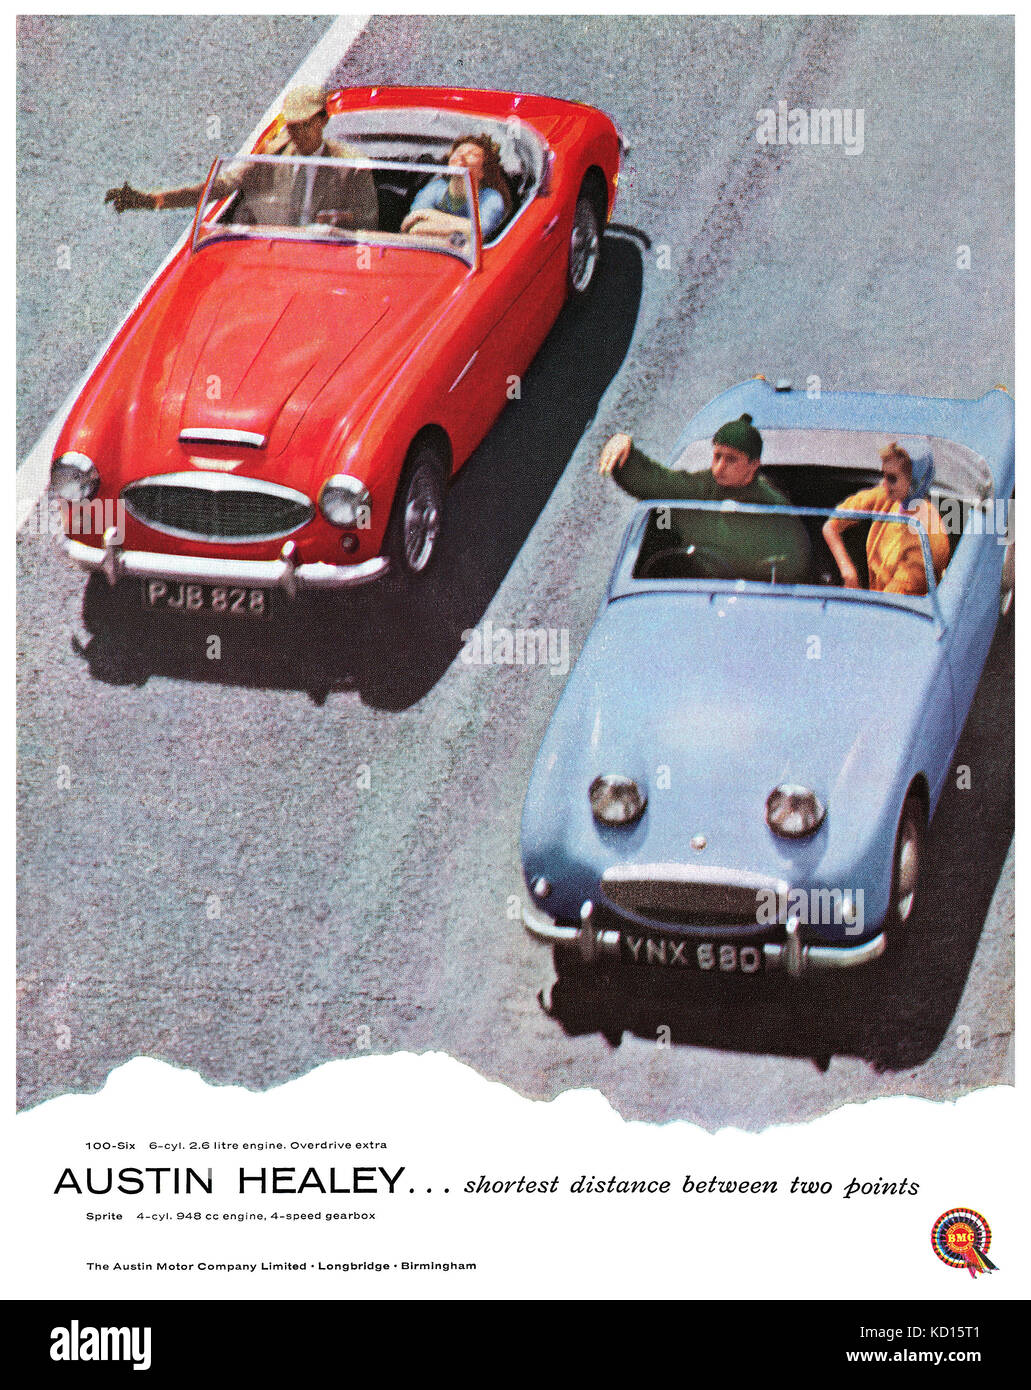 1958 British advertisement for the Austin Healey 100-6 and Austin Healey Sprite sports cars. - Stock Image